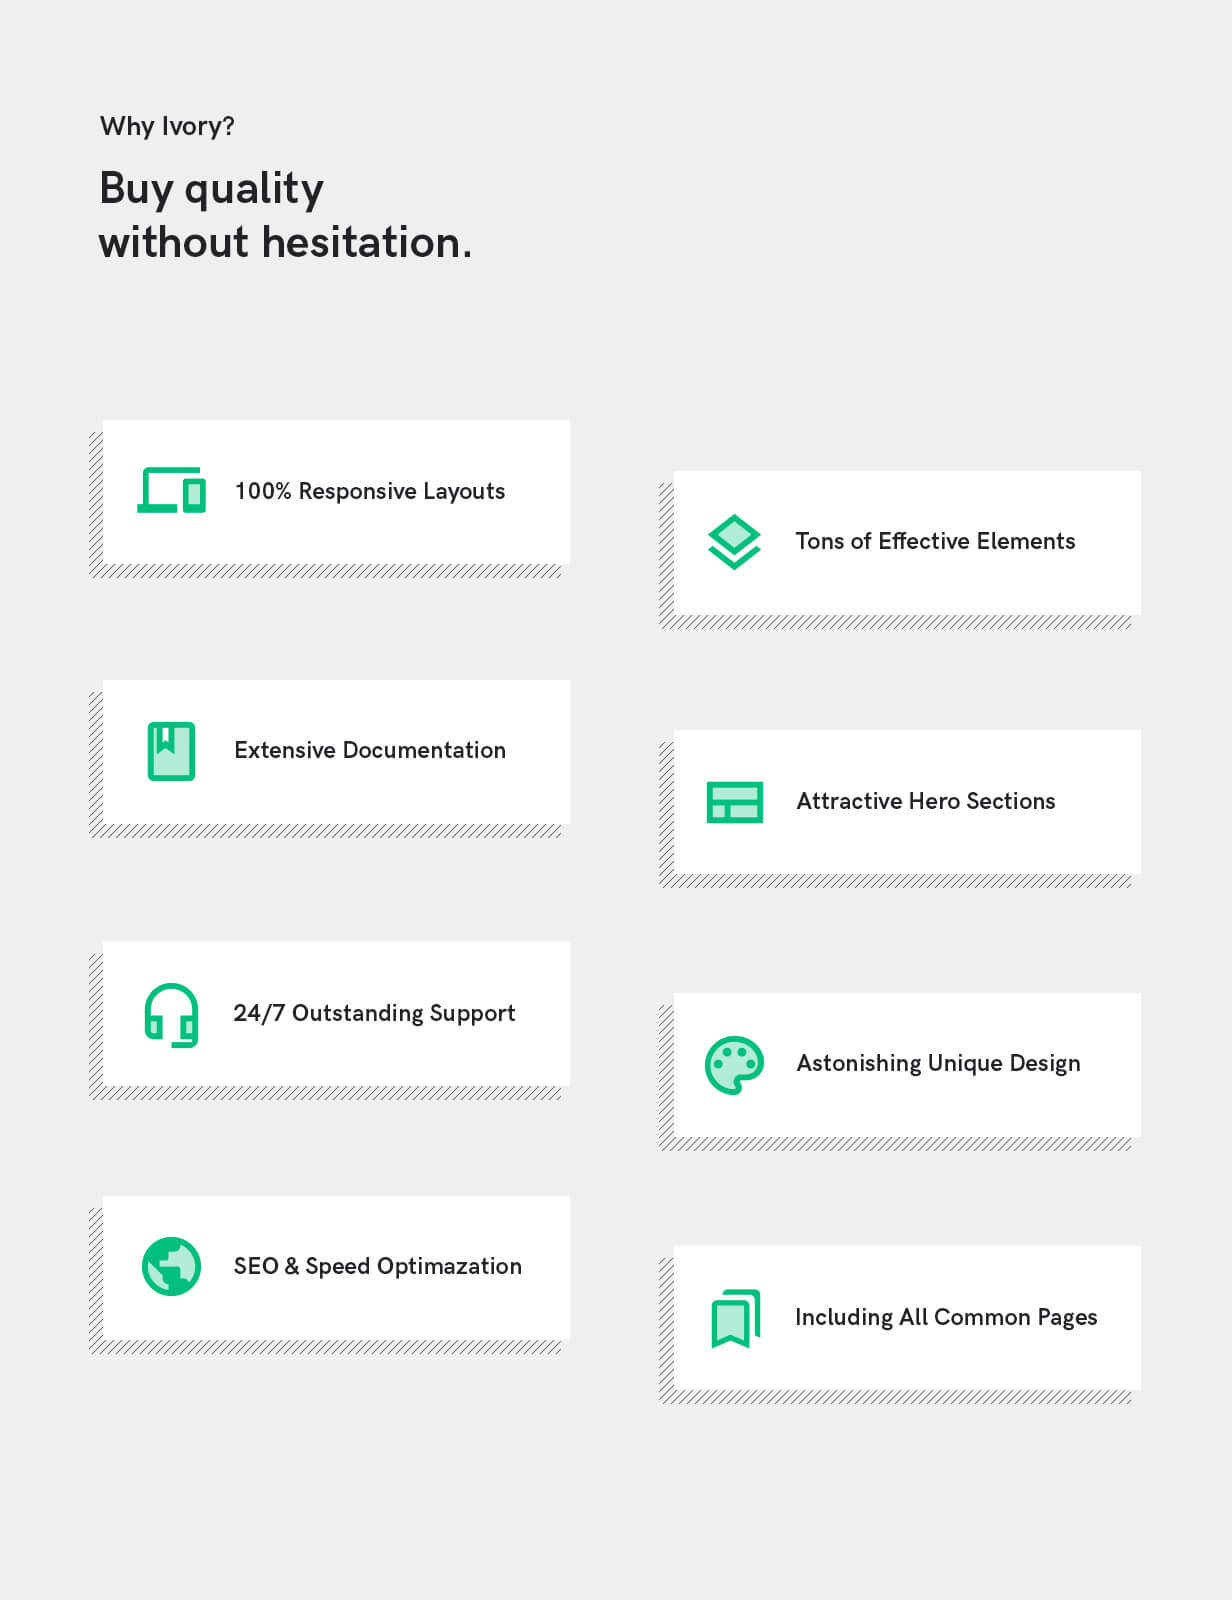 Why Ivory's HTML5 template